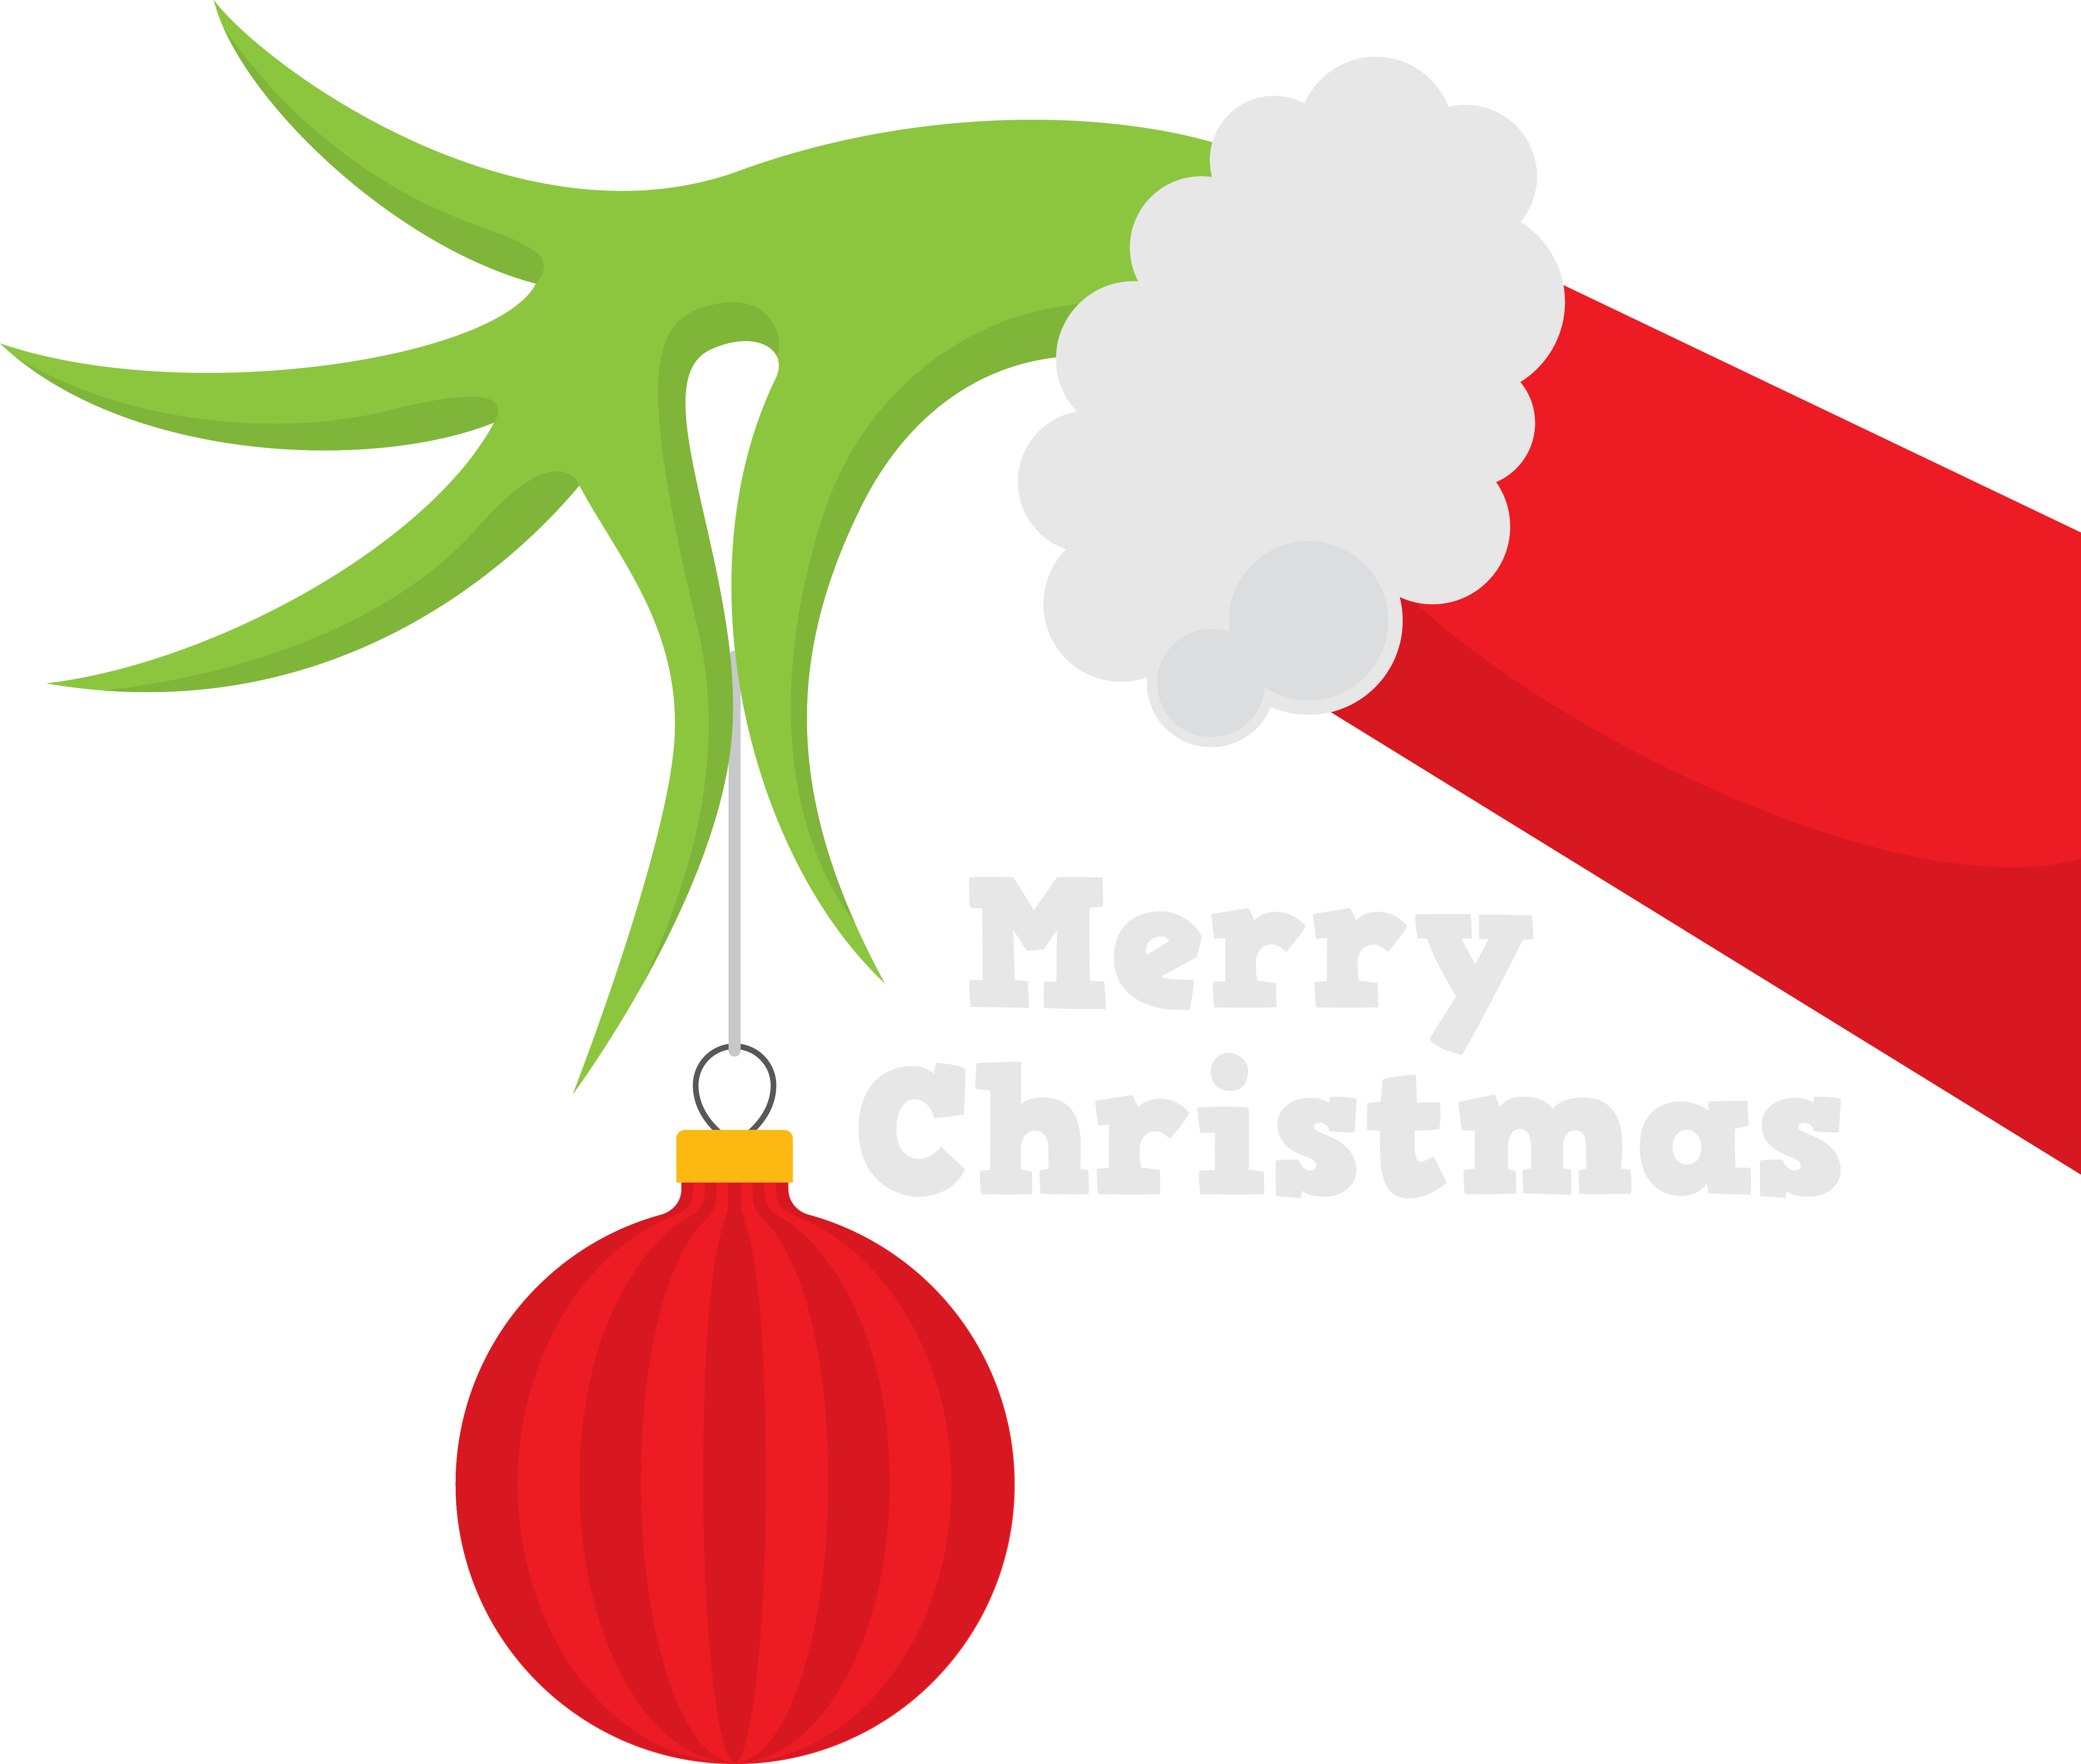 Merry Christmas In July Clipart.How The Grinch Stole Christmas Silhouette Whoville Grinch